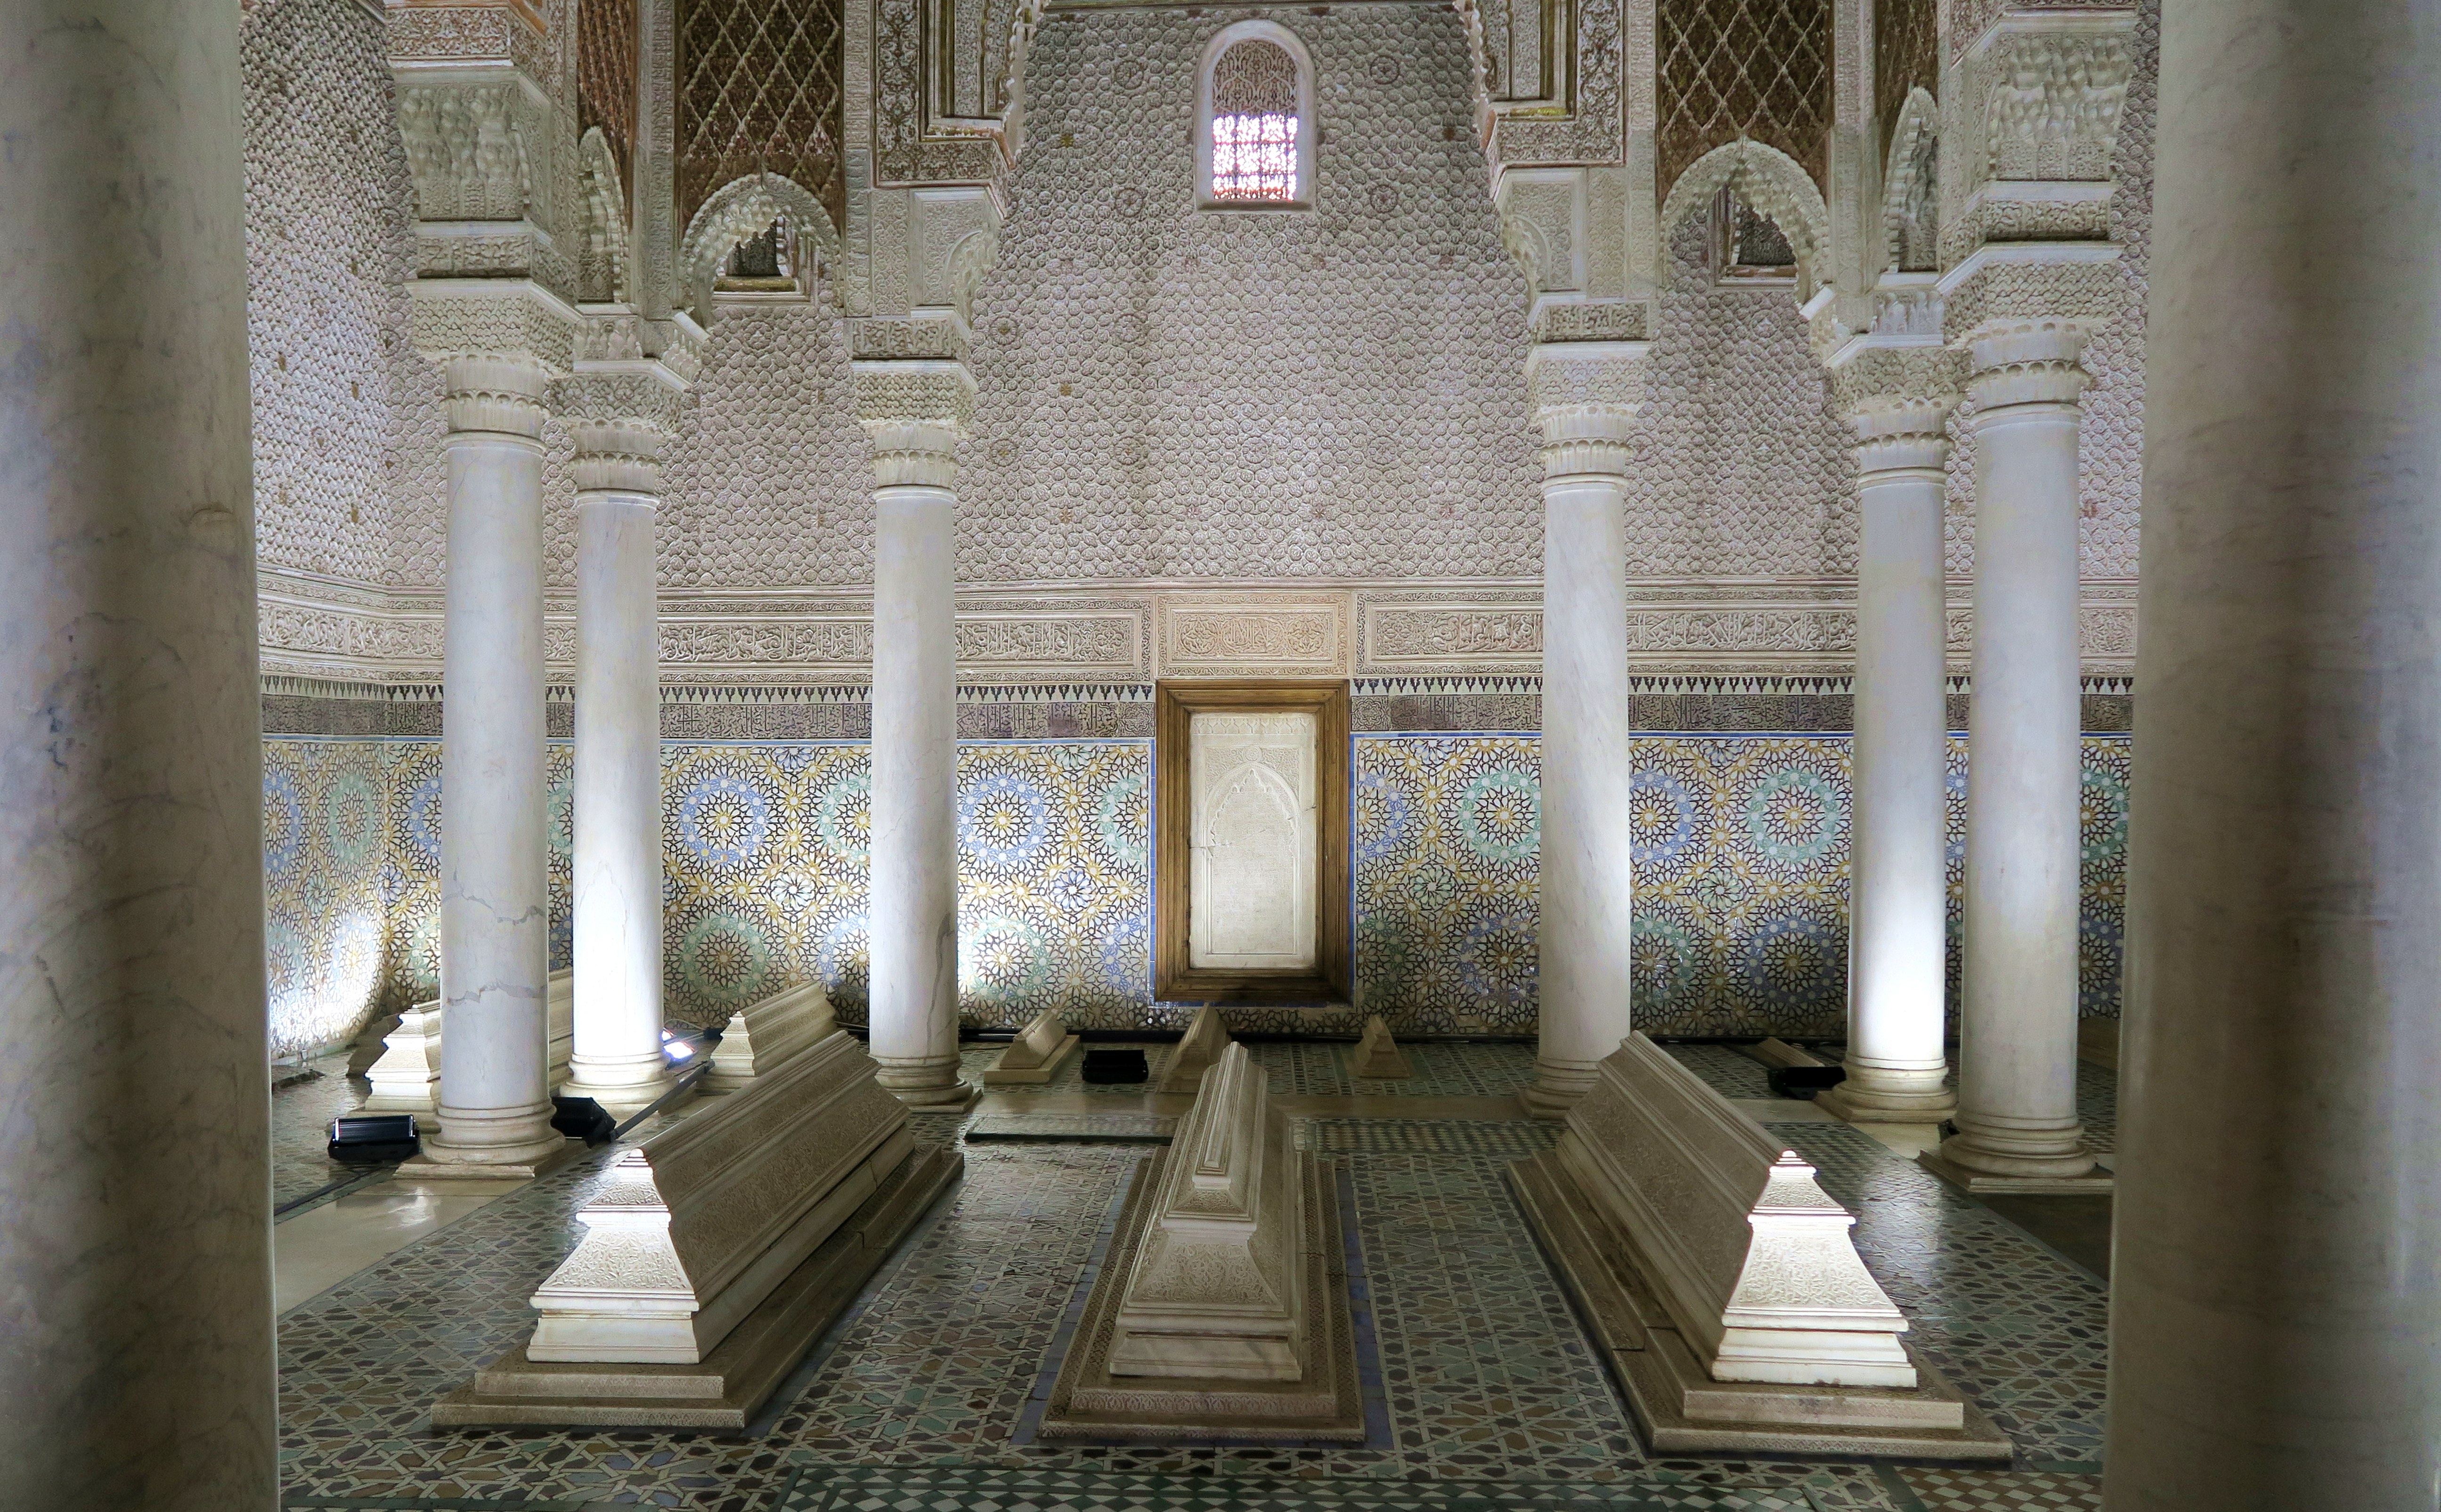 Marrakech Tombs Interior